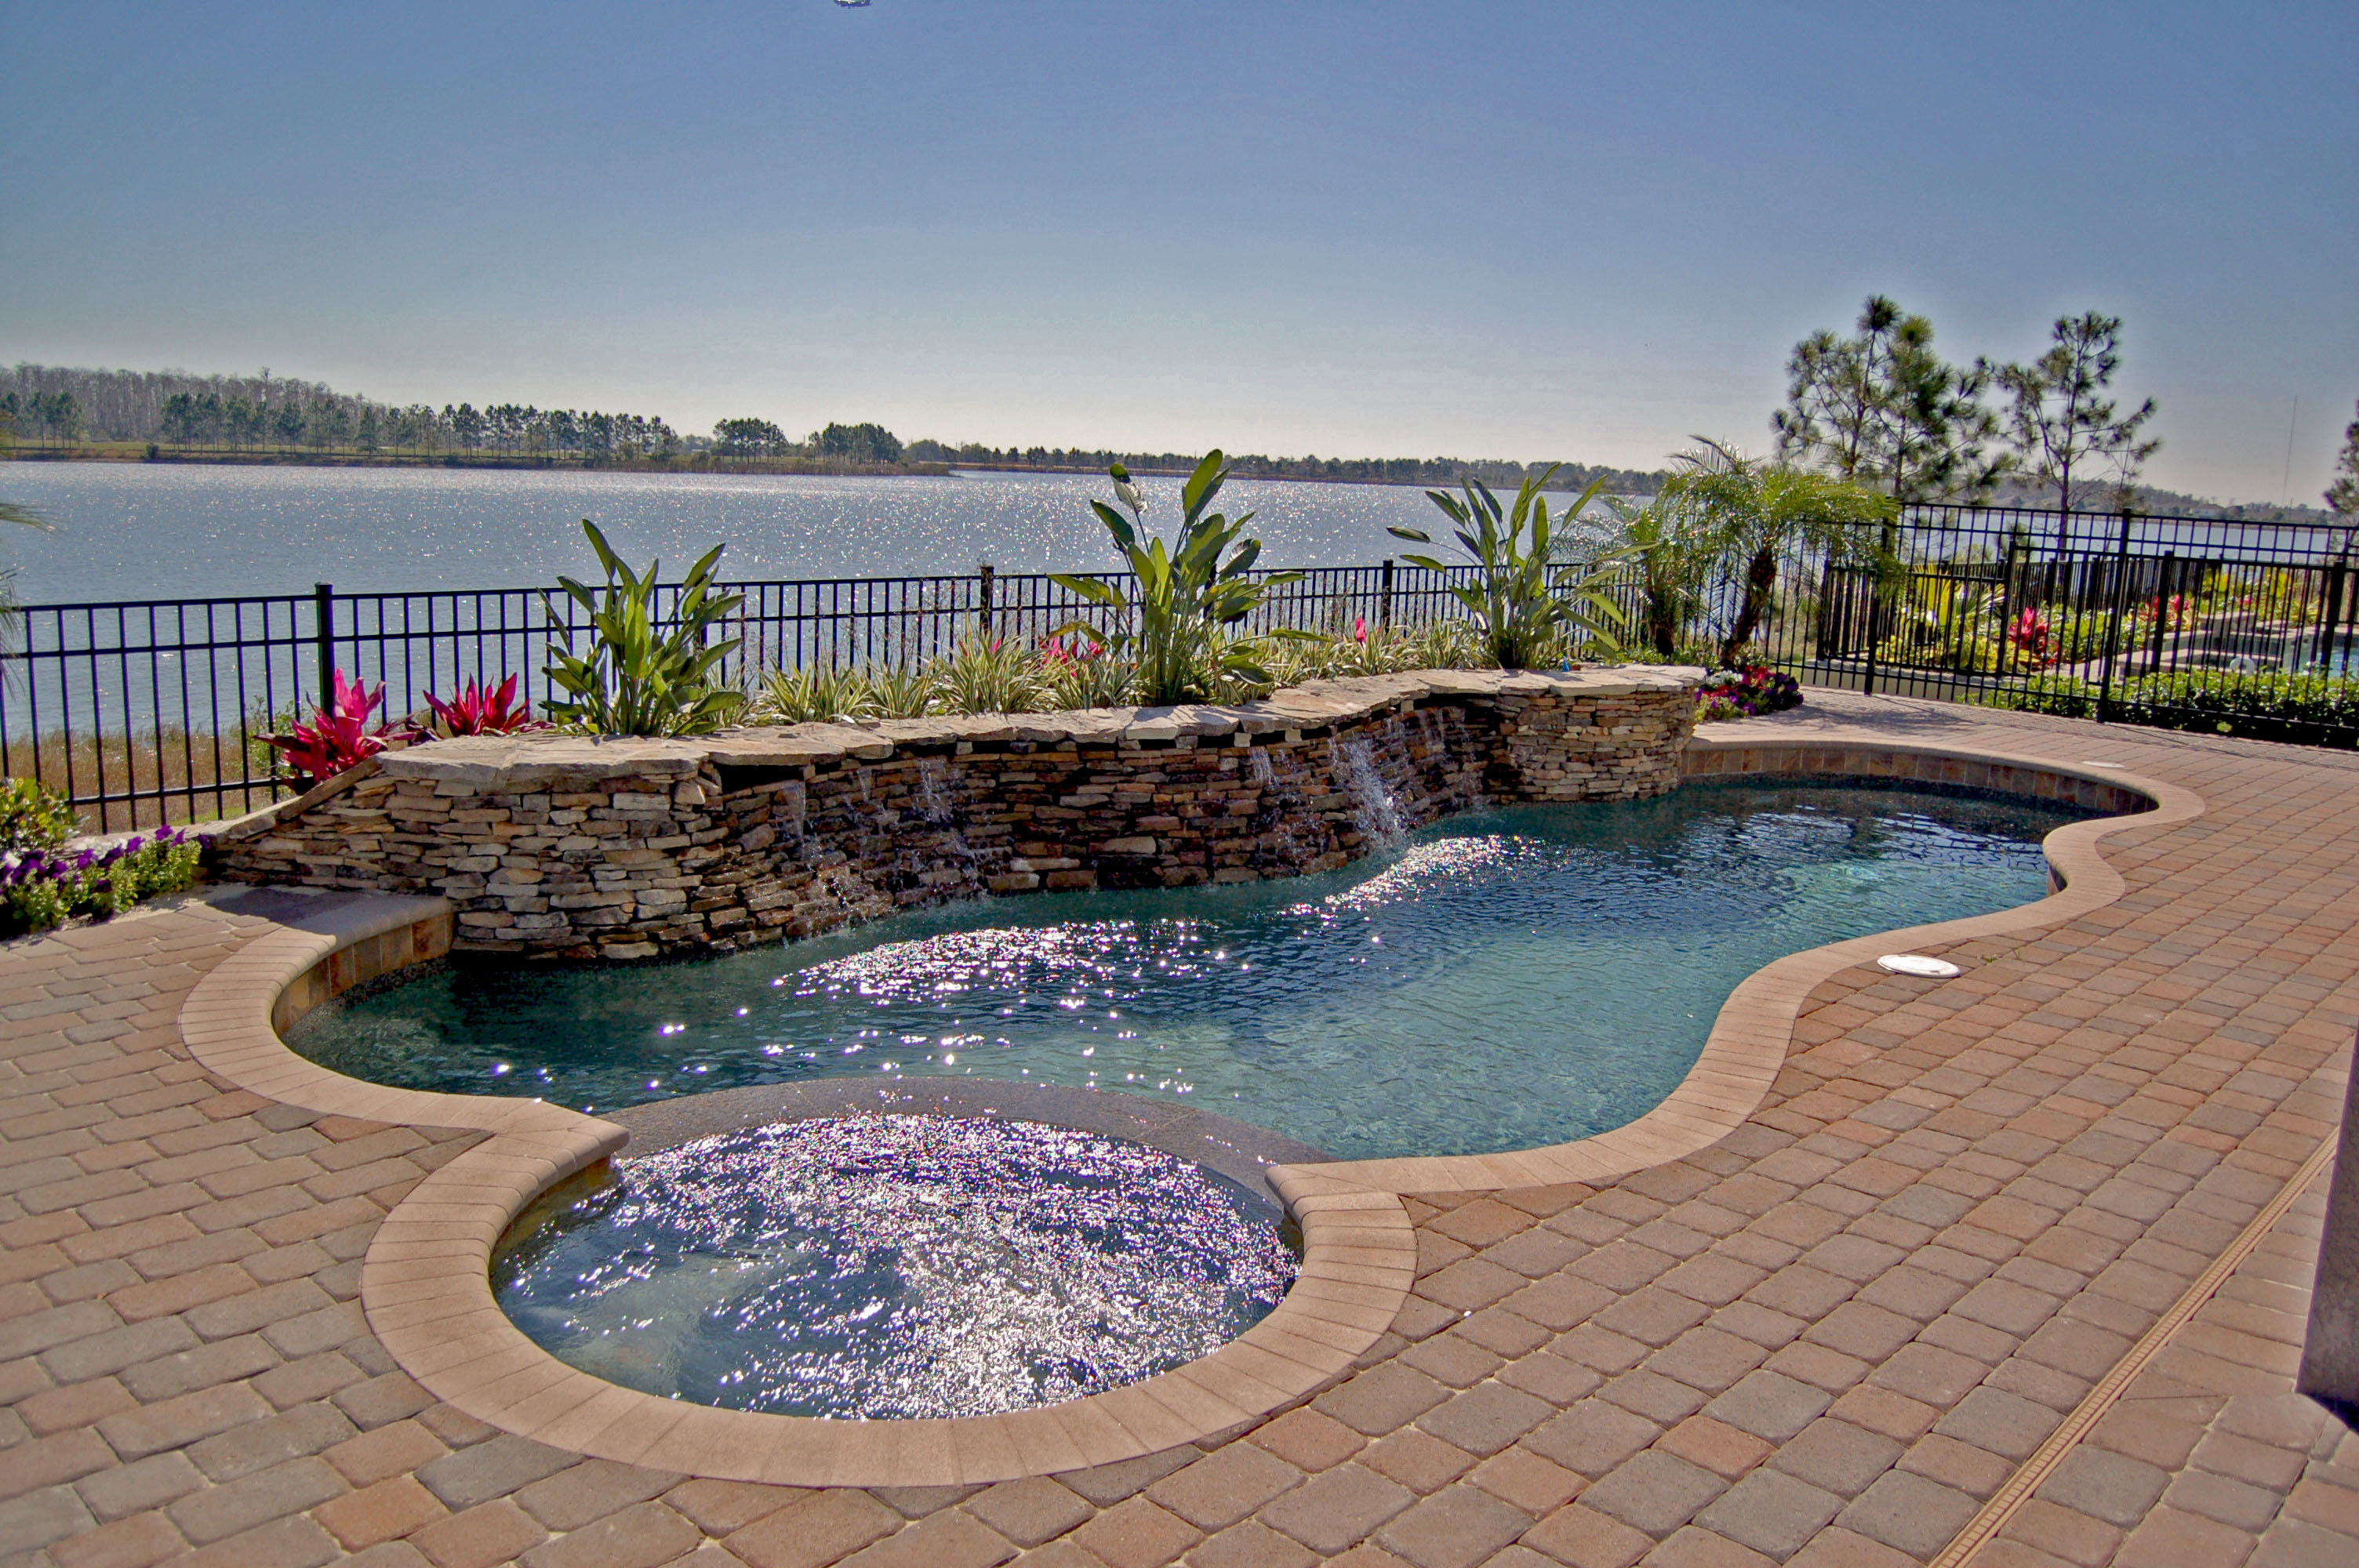 See How Easily You Can Add A Spa To Your Existing Pool